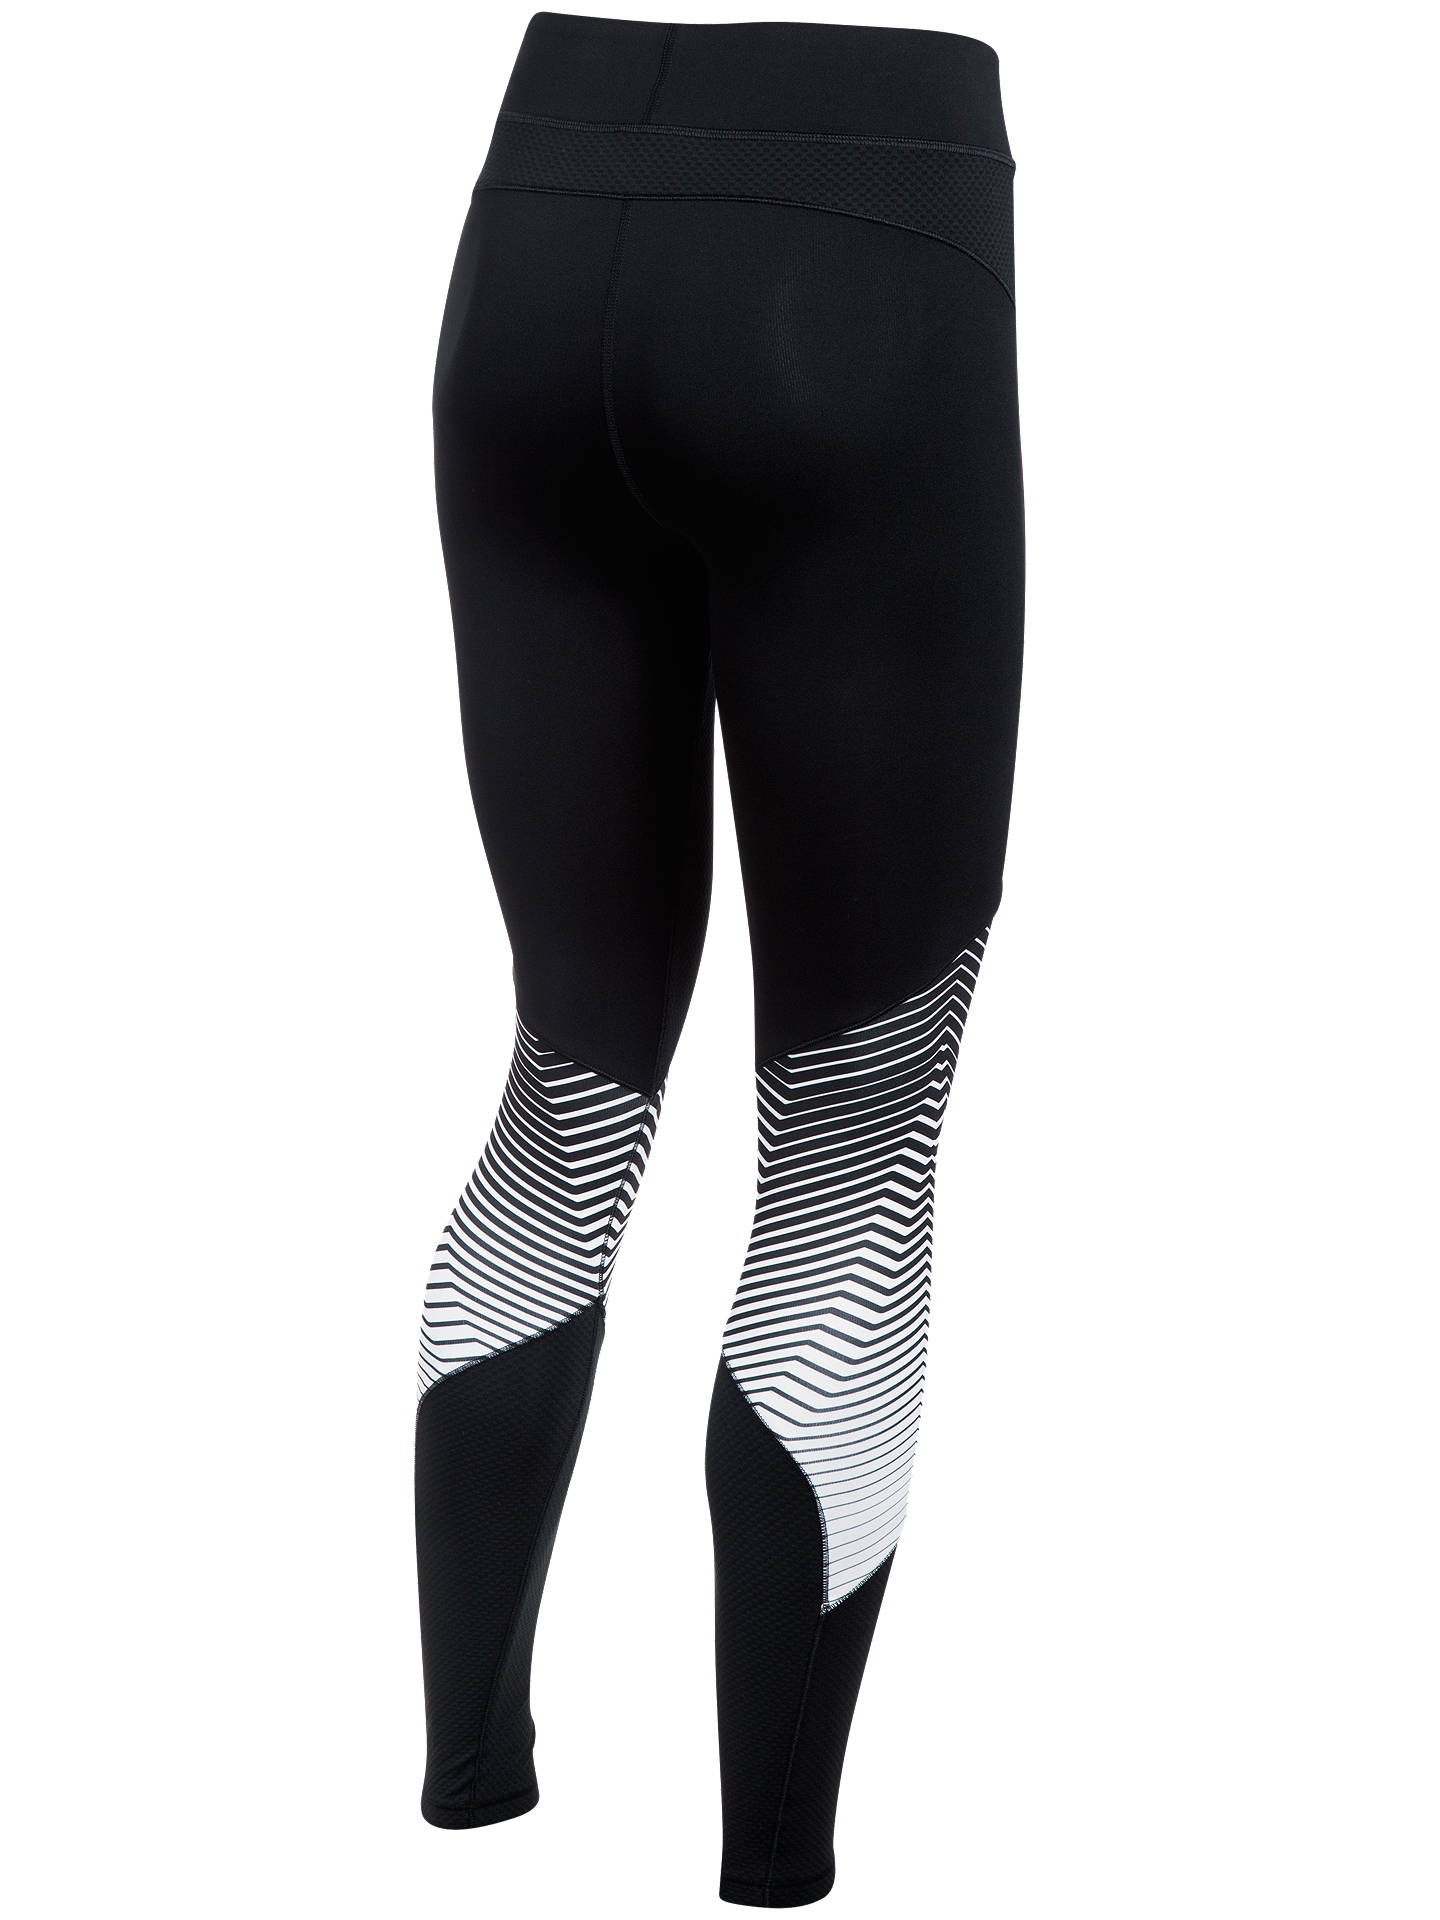 c03a08512ac4c2 ... Buy Under Armour ColdGear Reactor Running Tights, Black, XS Online at  johnlewis.com